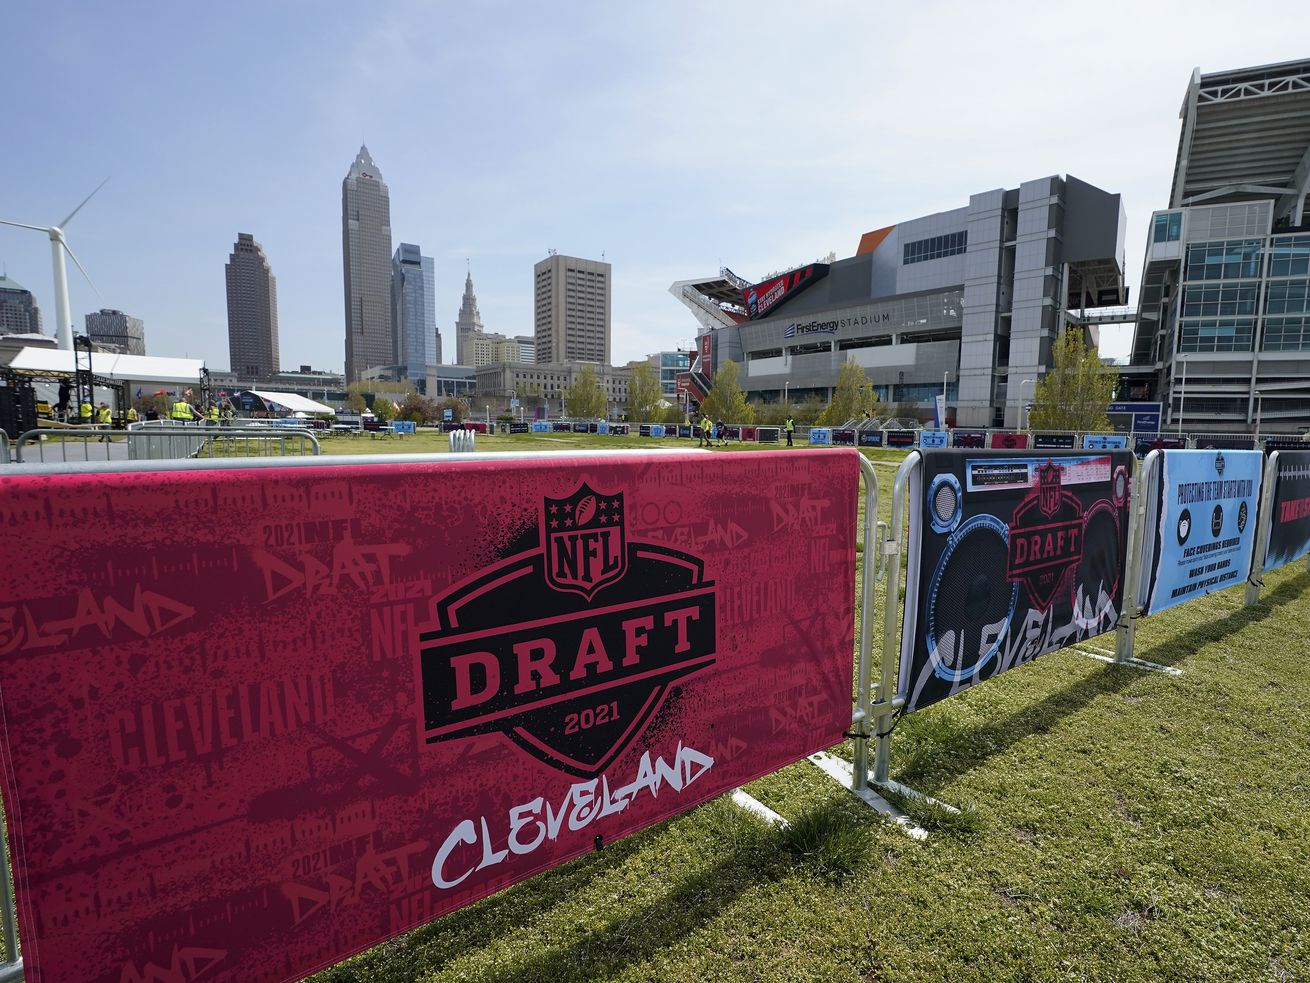 NFL Draft signs decorate the fan experience area near First Energy Stadium in Cleveland.